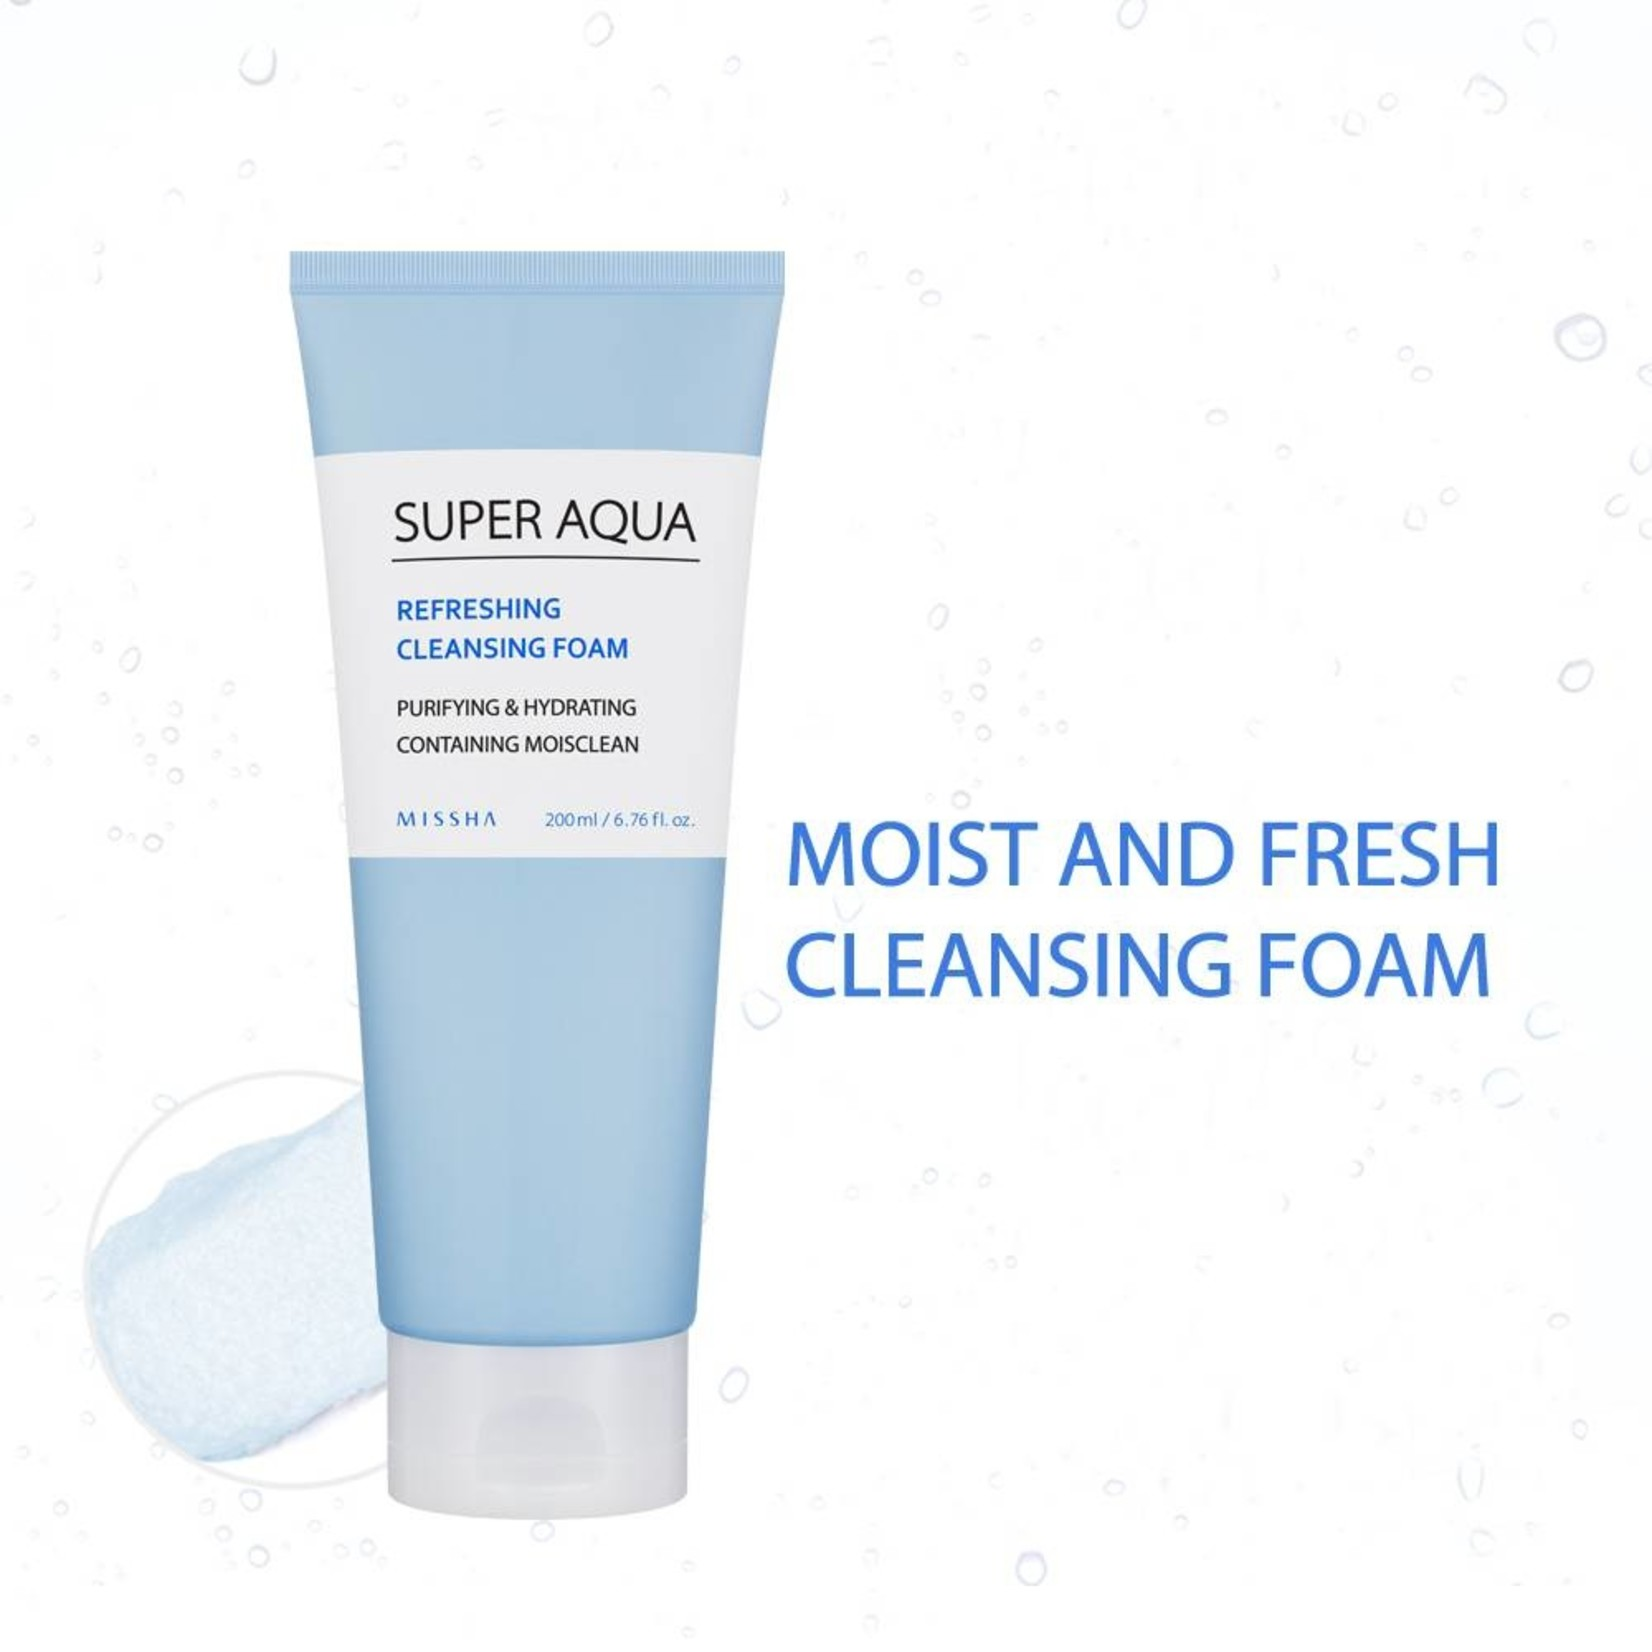 Missha Super Aqua Refreshing Cleansing Foam